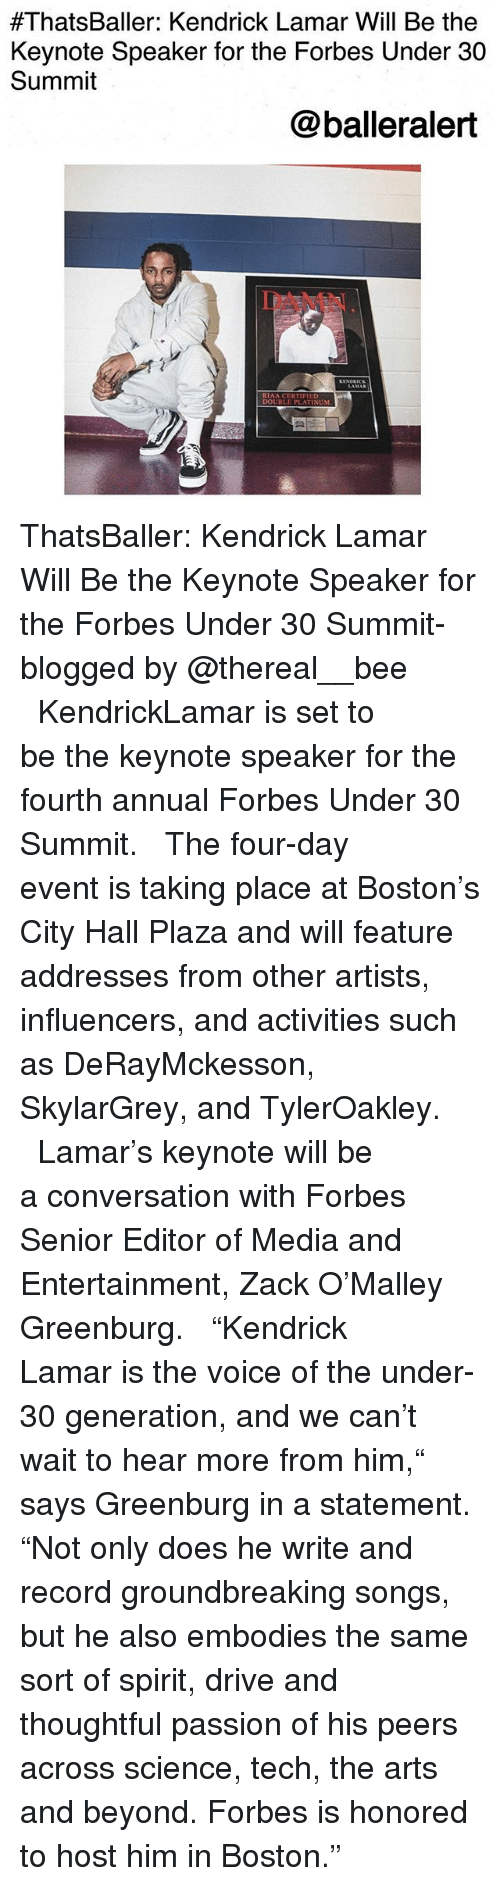 "city hall:  #ThatsBaller: Kendrick Lamar Will Be the  Keynote Speaker for the Forbes Under 30  Summit  @balleralert  DAMN  RIAA CERT  DOUBLE PLATINUM ThatsBaller: Kendrick Lamar Will Be the Keynote Speaker for the Forbes Under 30 Summit-blogged by @thereal__bee ⠀⠀⠀⠀⠀⠀⠀⠀⠀ ⠀⠀ KendrickLamar is set to be the keynote speaker for the fourth annual Forbes Under 30 Summit. ⠀⠀⠀⠀⠀⠀⠀⠀⠀ ⠀⠀ The four-day event is taking place at Boston's City Hall Plaza and will feature addresses from other artists, influencers, and activities such as DeRayMckesson, SkylarGrey, and TylerOakley. ⠀⠀⠀⠀⠀⠀⠀⠀⠀ ⠀⠀ Lamar's keynote will be a conversation with Forbes Senior Editor of Media and Entertainment, Zack O'Malley Greenburg. ⠀⠀⠀⠀⠀⠀⠀⠀⠀ ⠀⠀ ""Kendrick Lamar is the voice of the under-30 generation, and we can't wait to hear more from him,"" says Greenburg in a statement. ""Not only does he write and record groundbreaking songs, but he also embodies the same sort of spirit, drive and thoughtful passion of his peers across science, tech, the arts and beyond. Forbes is honored to host him in Boston."""